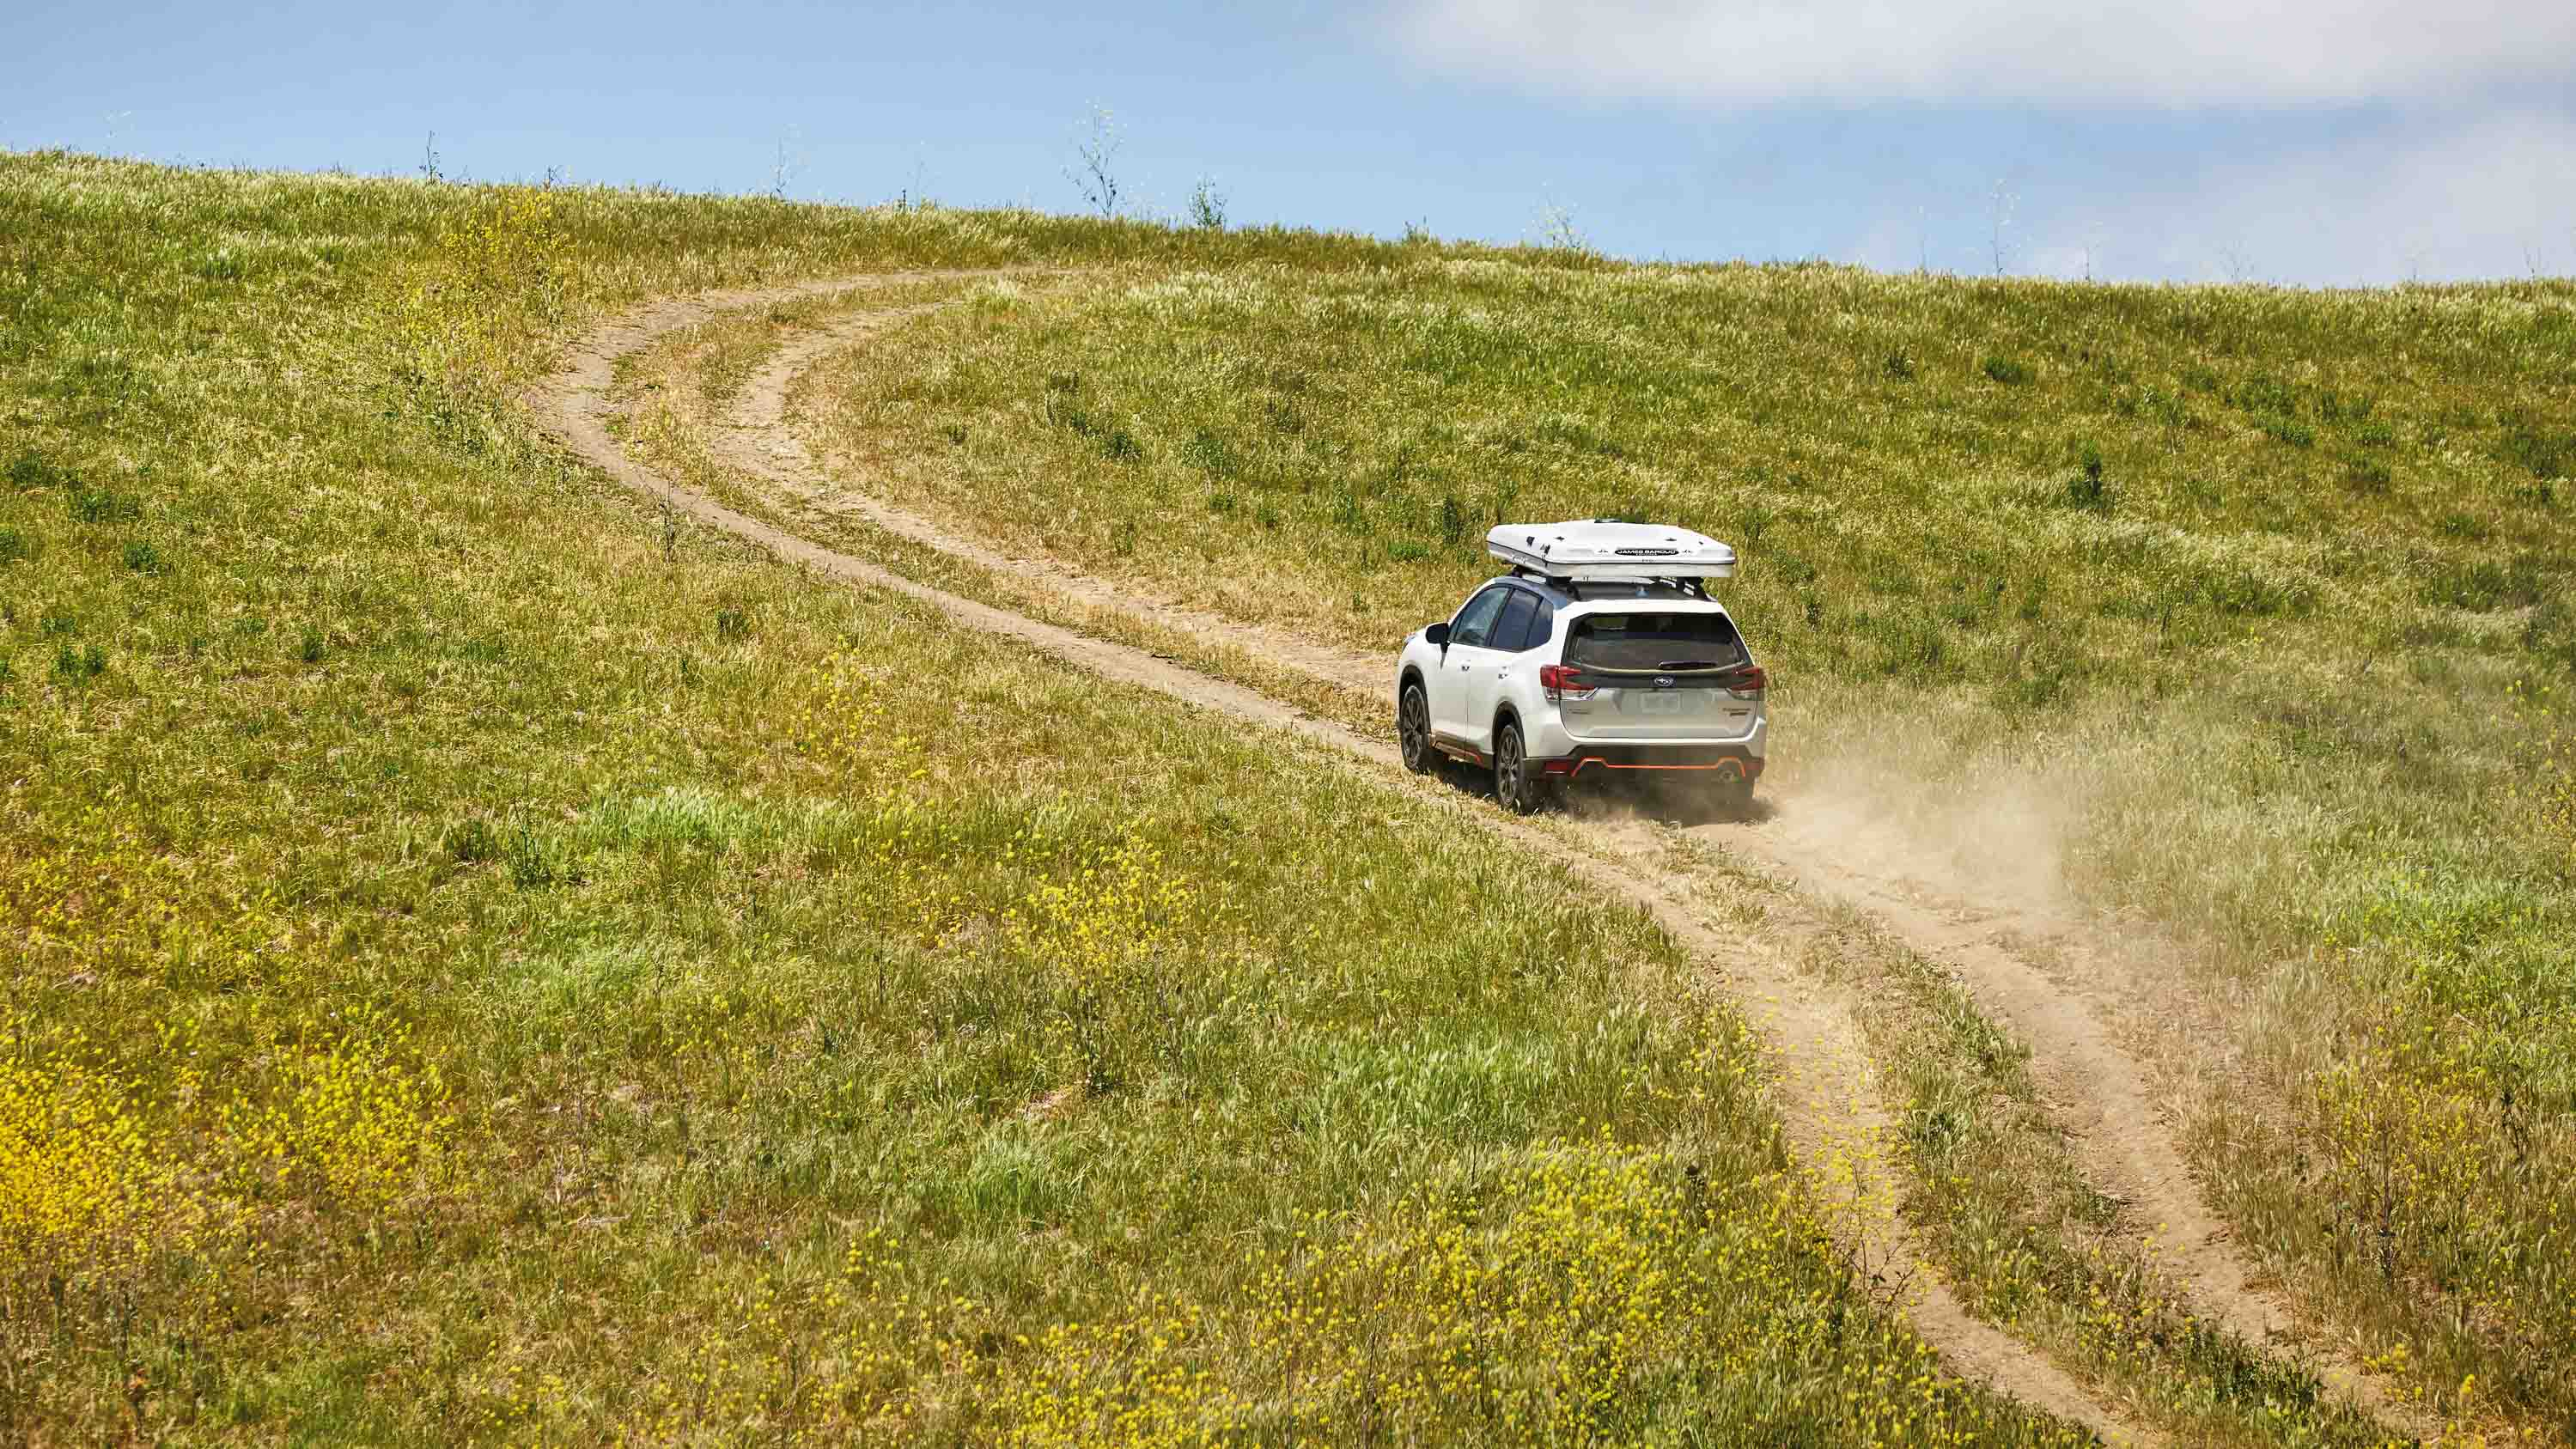 Jeff Stockwell - Subaru forester